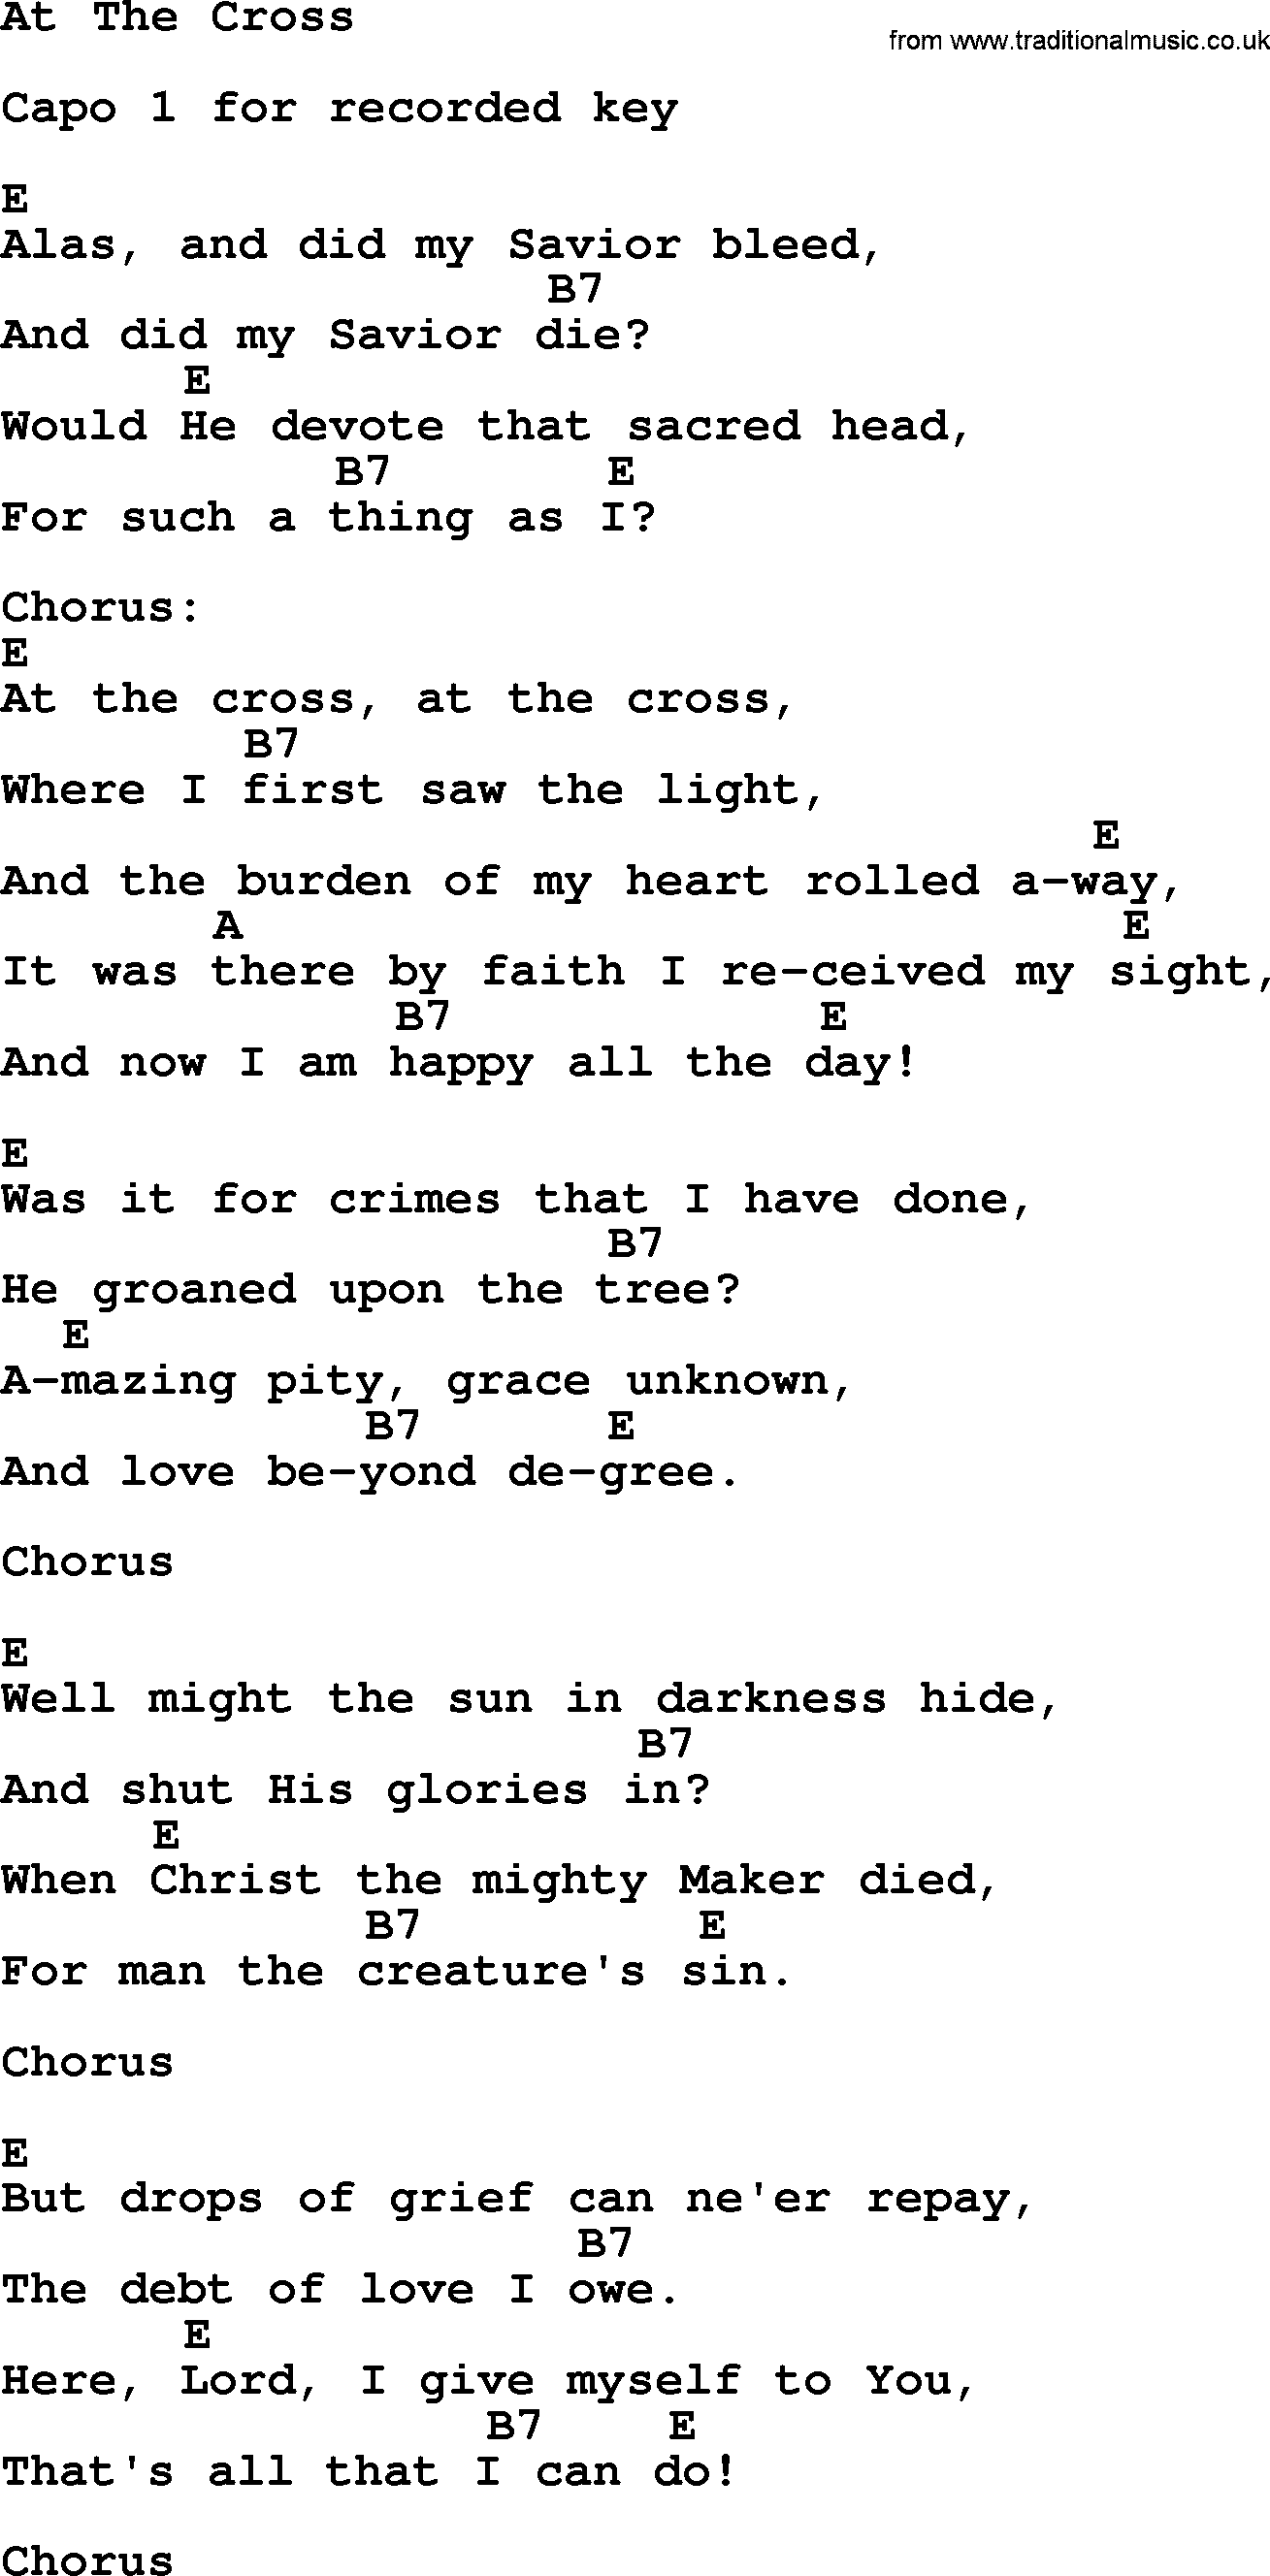 81 At The Cross Where I First Saw The Light Lyrics